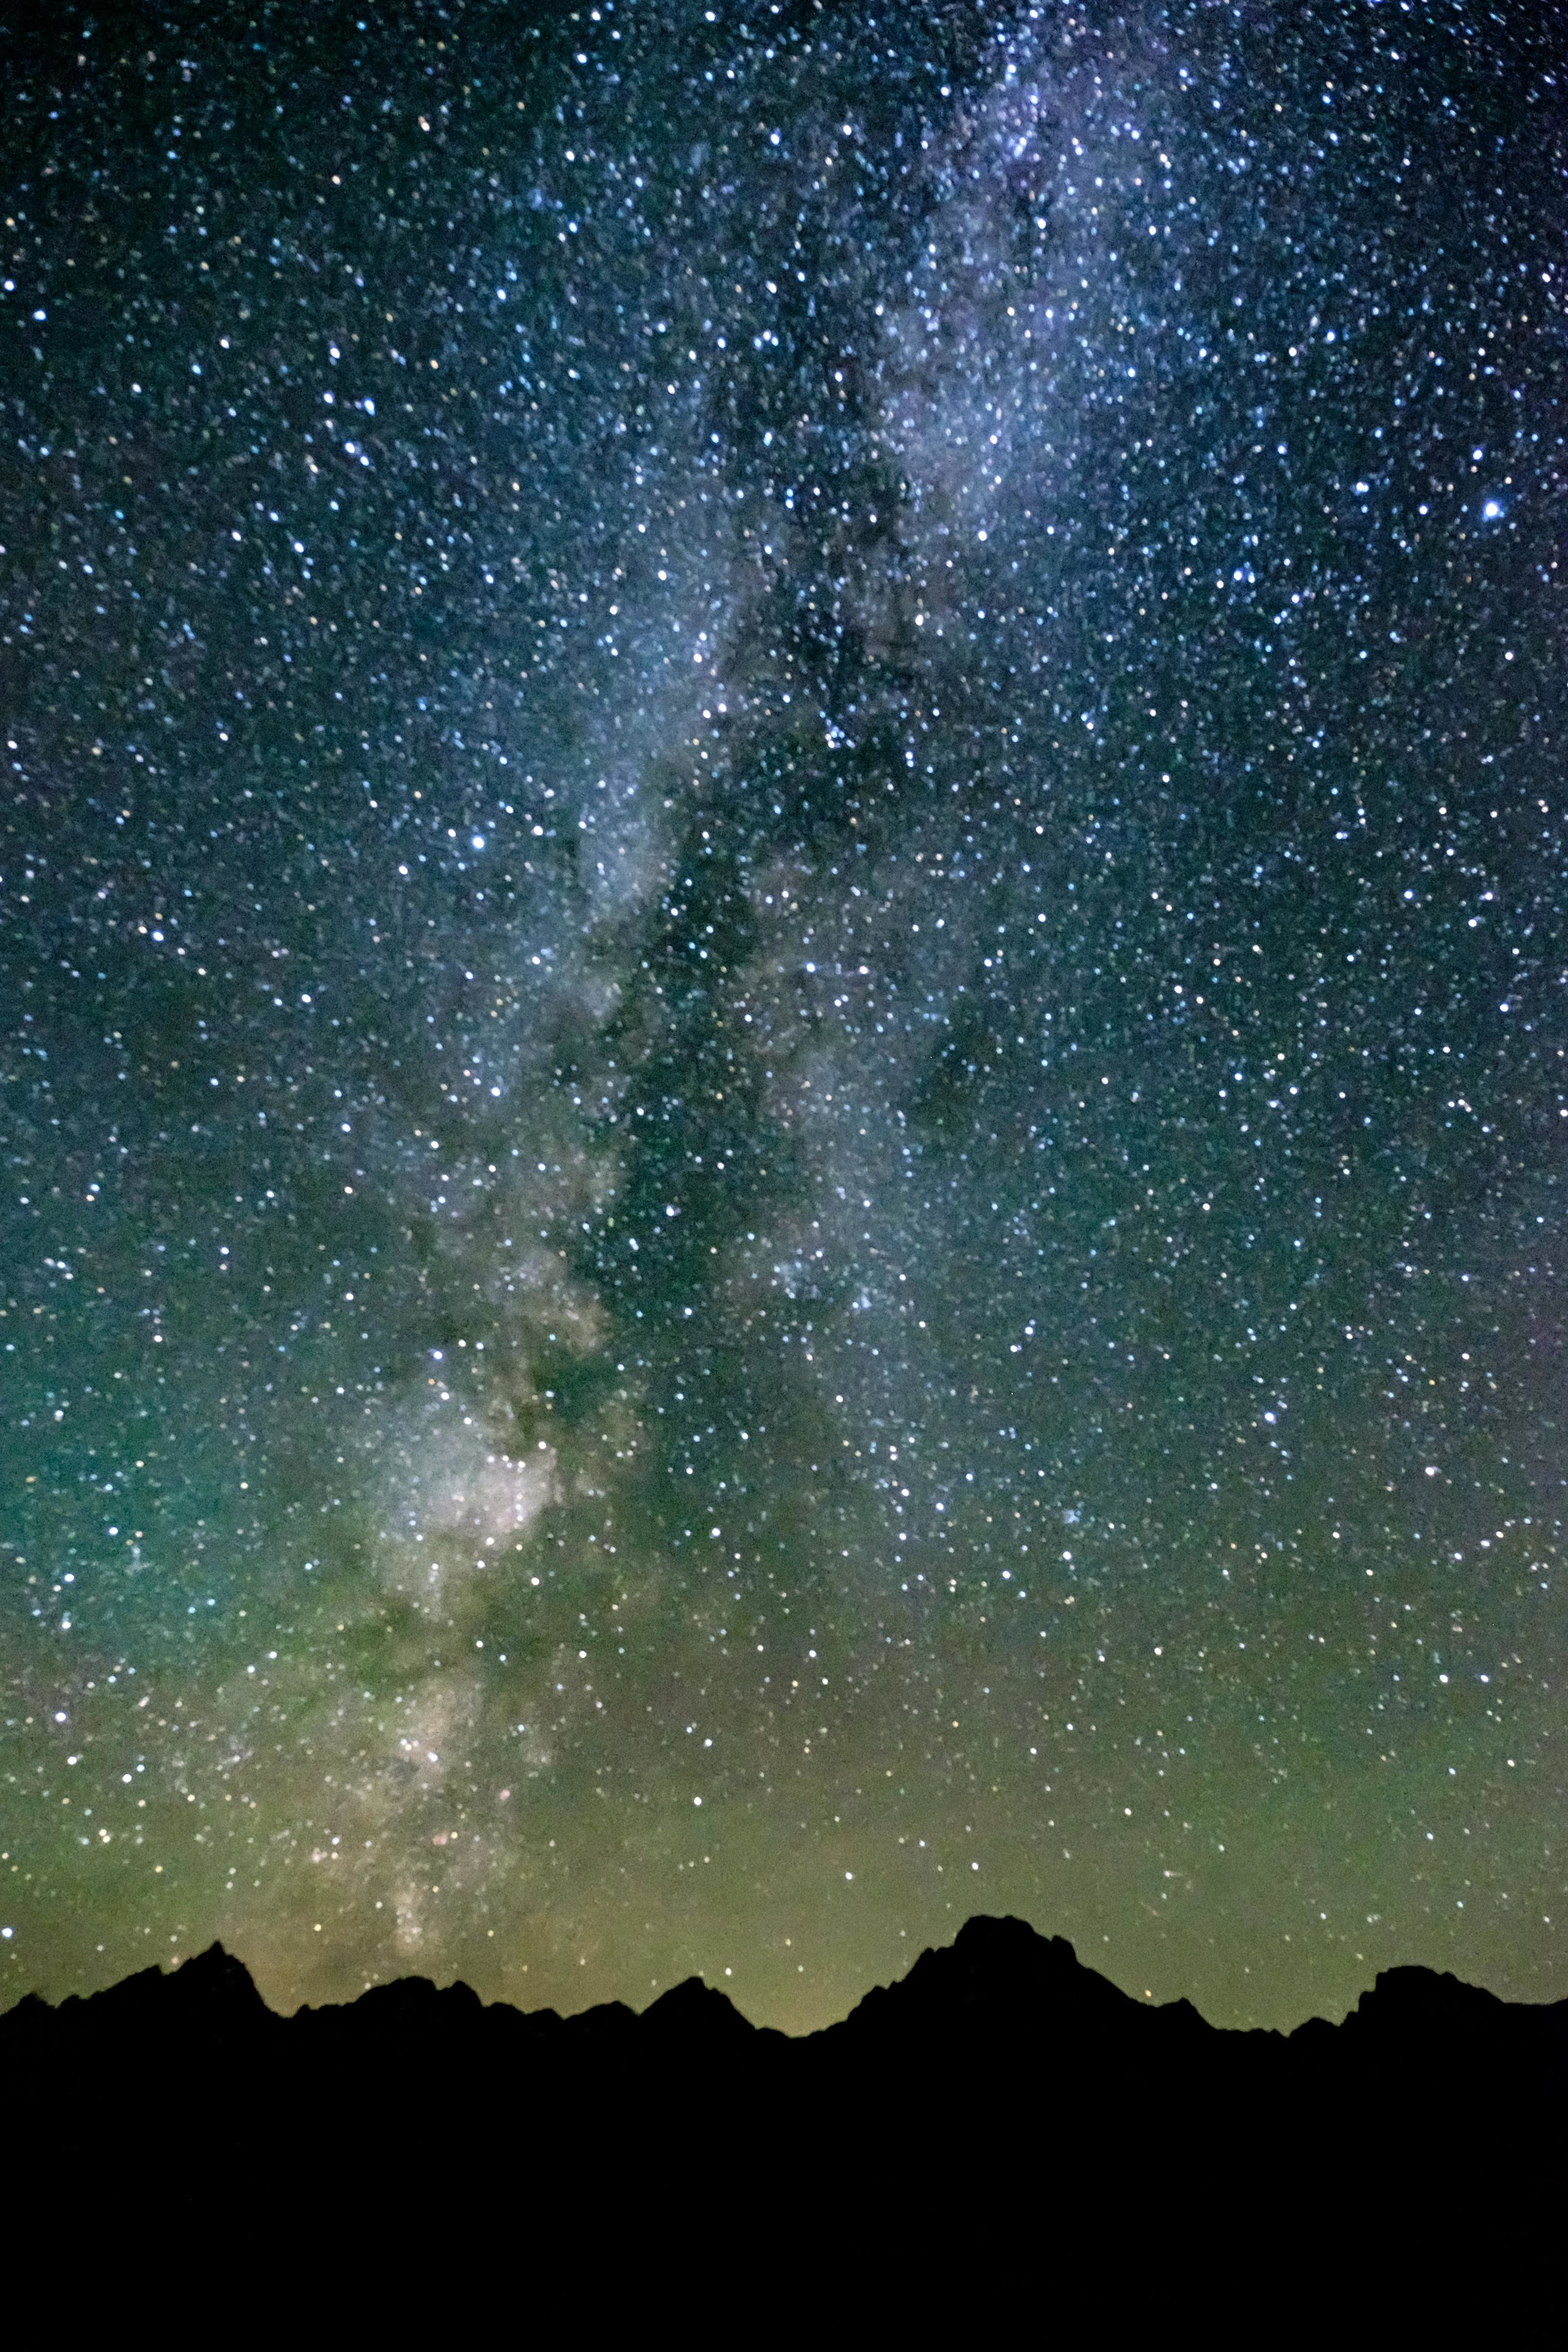 So excited to see the milky way late one evening.